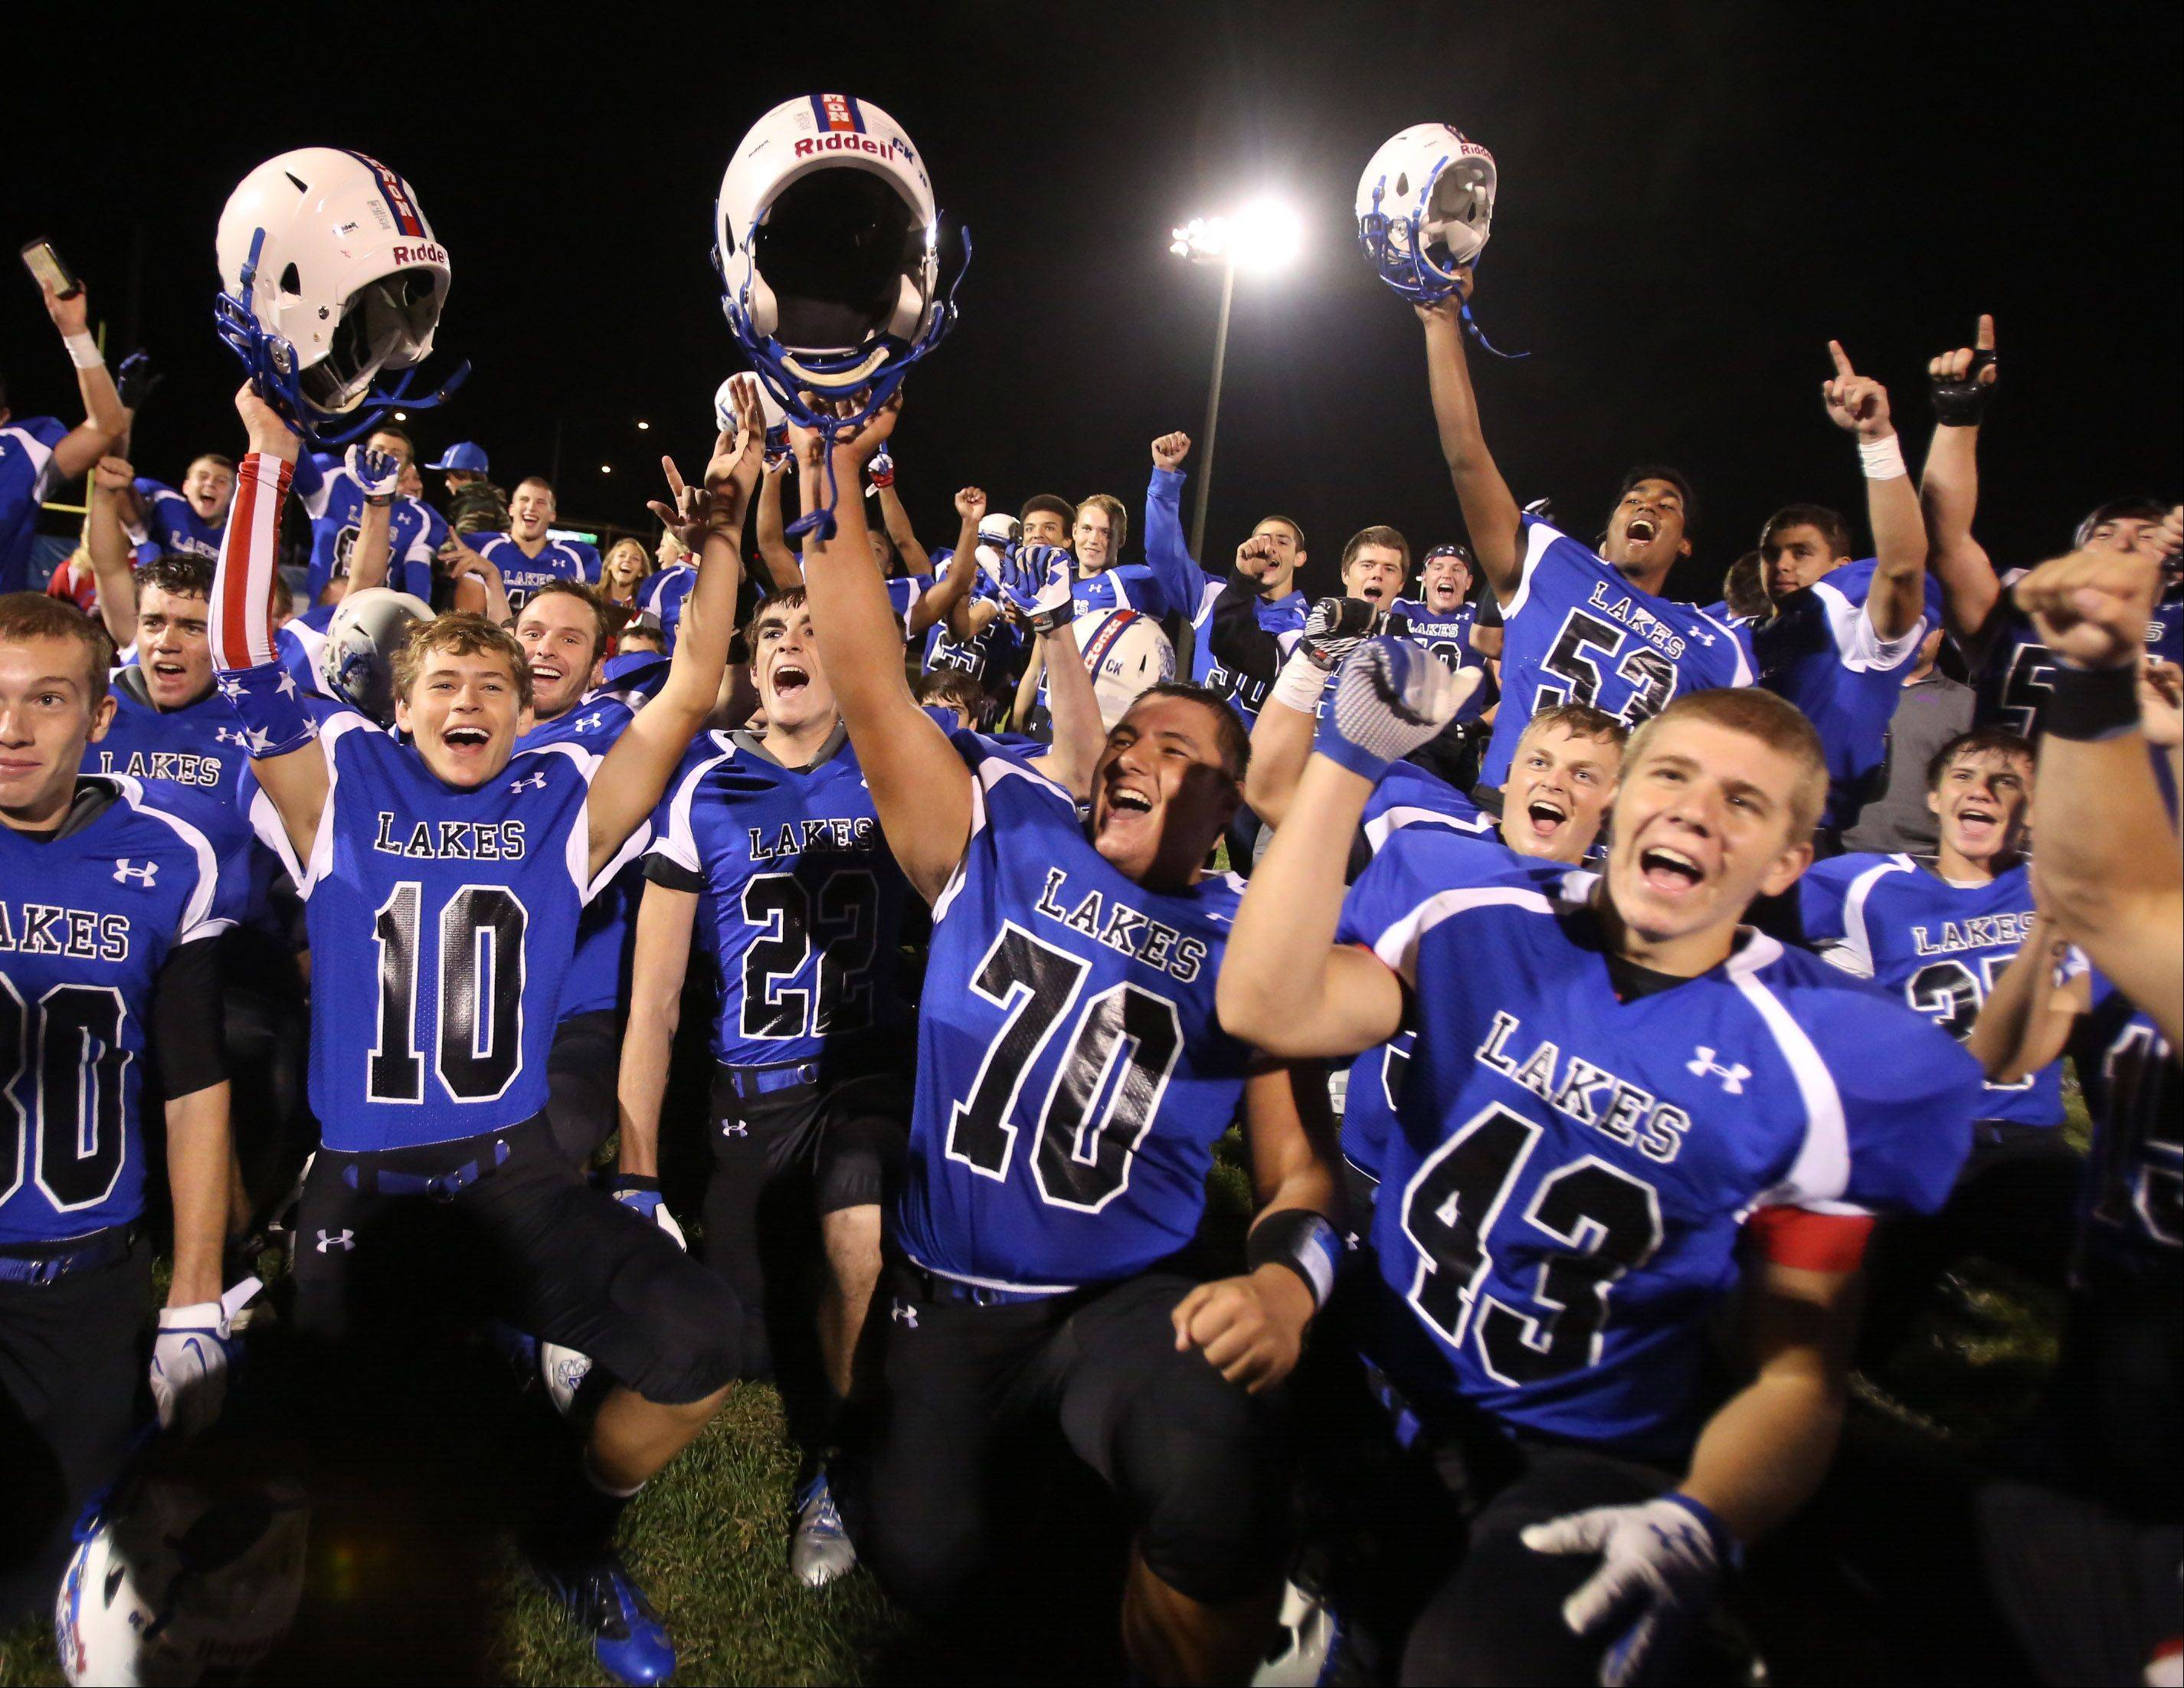 Lakes players celebrate winning 35-0 over district rival Antioch.